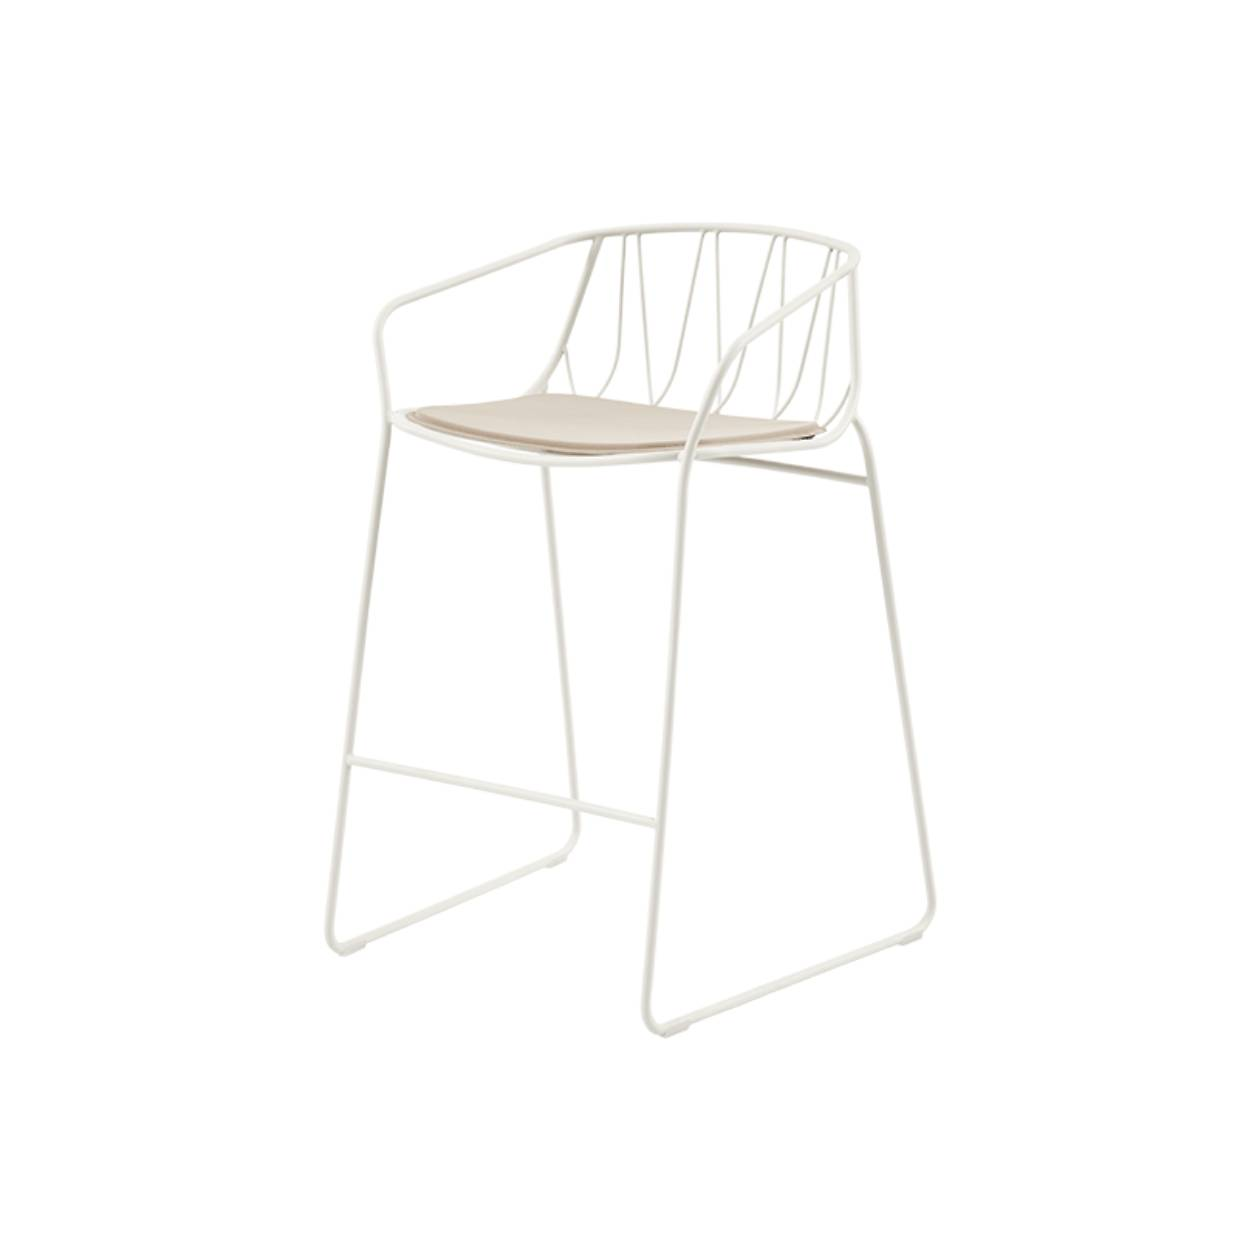 Chee Bar + Counter Stool: Counter + White + Light Greige Seat Pad